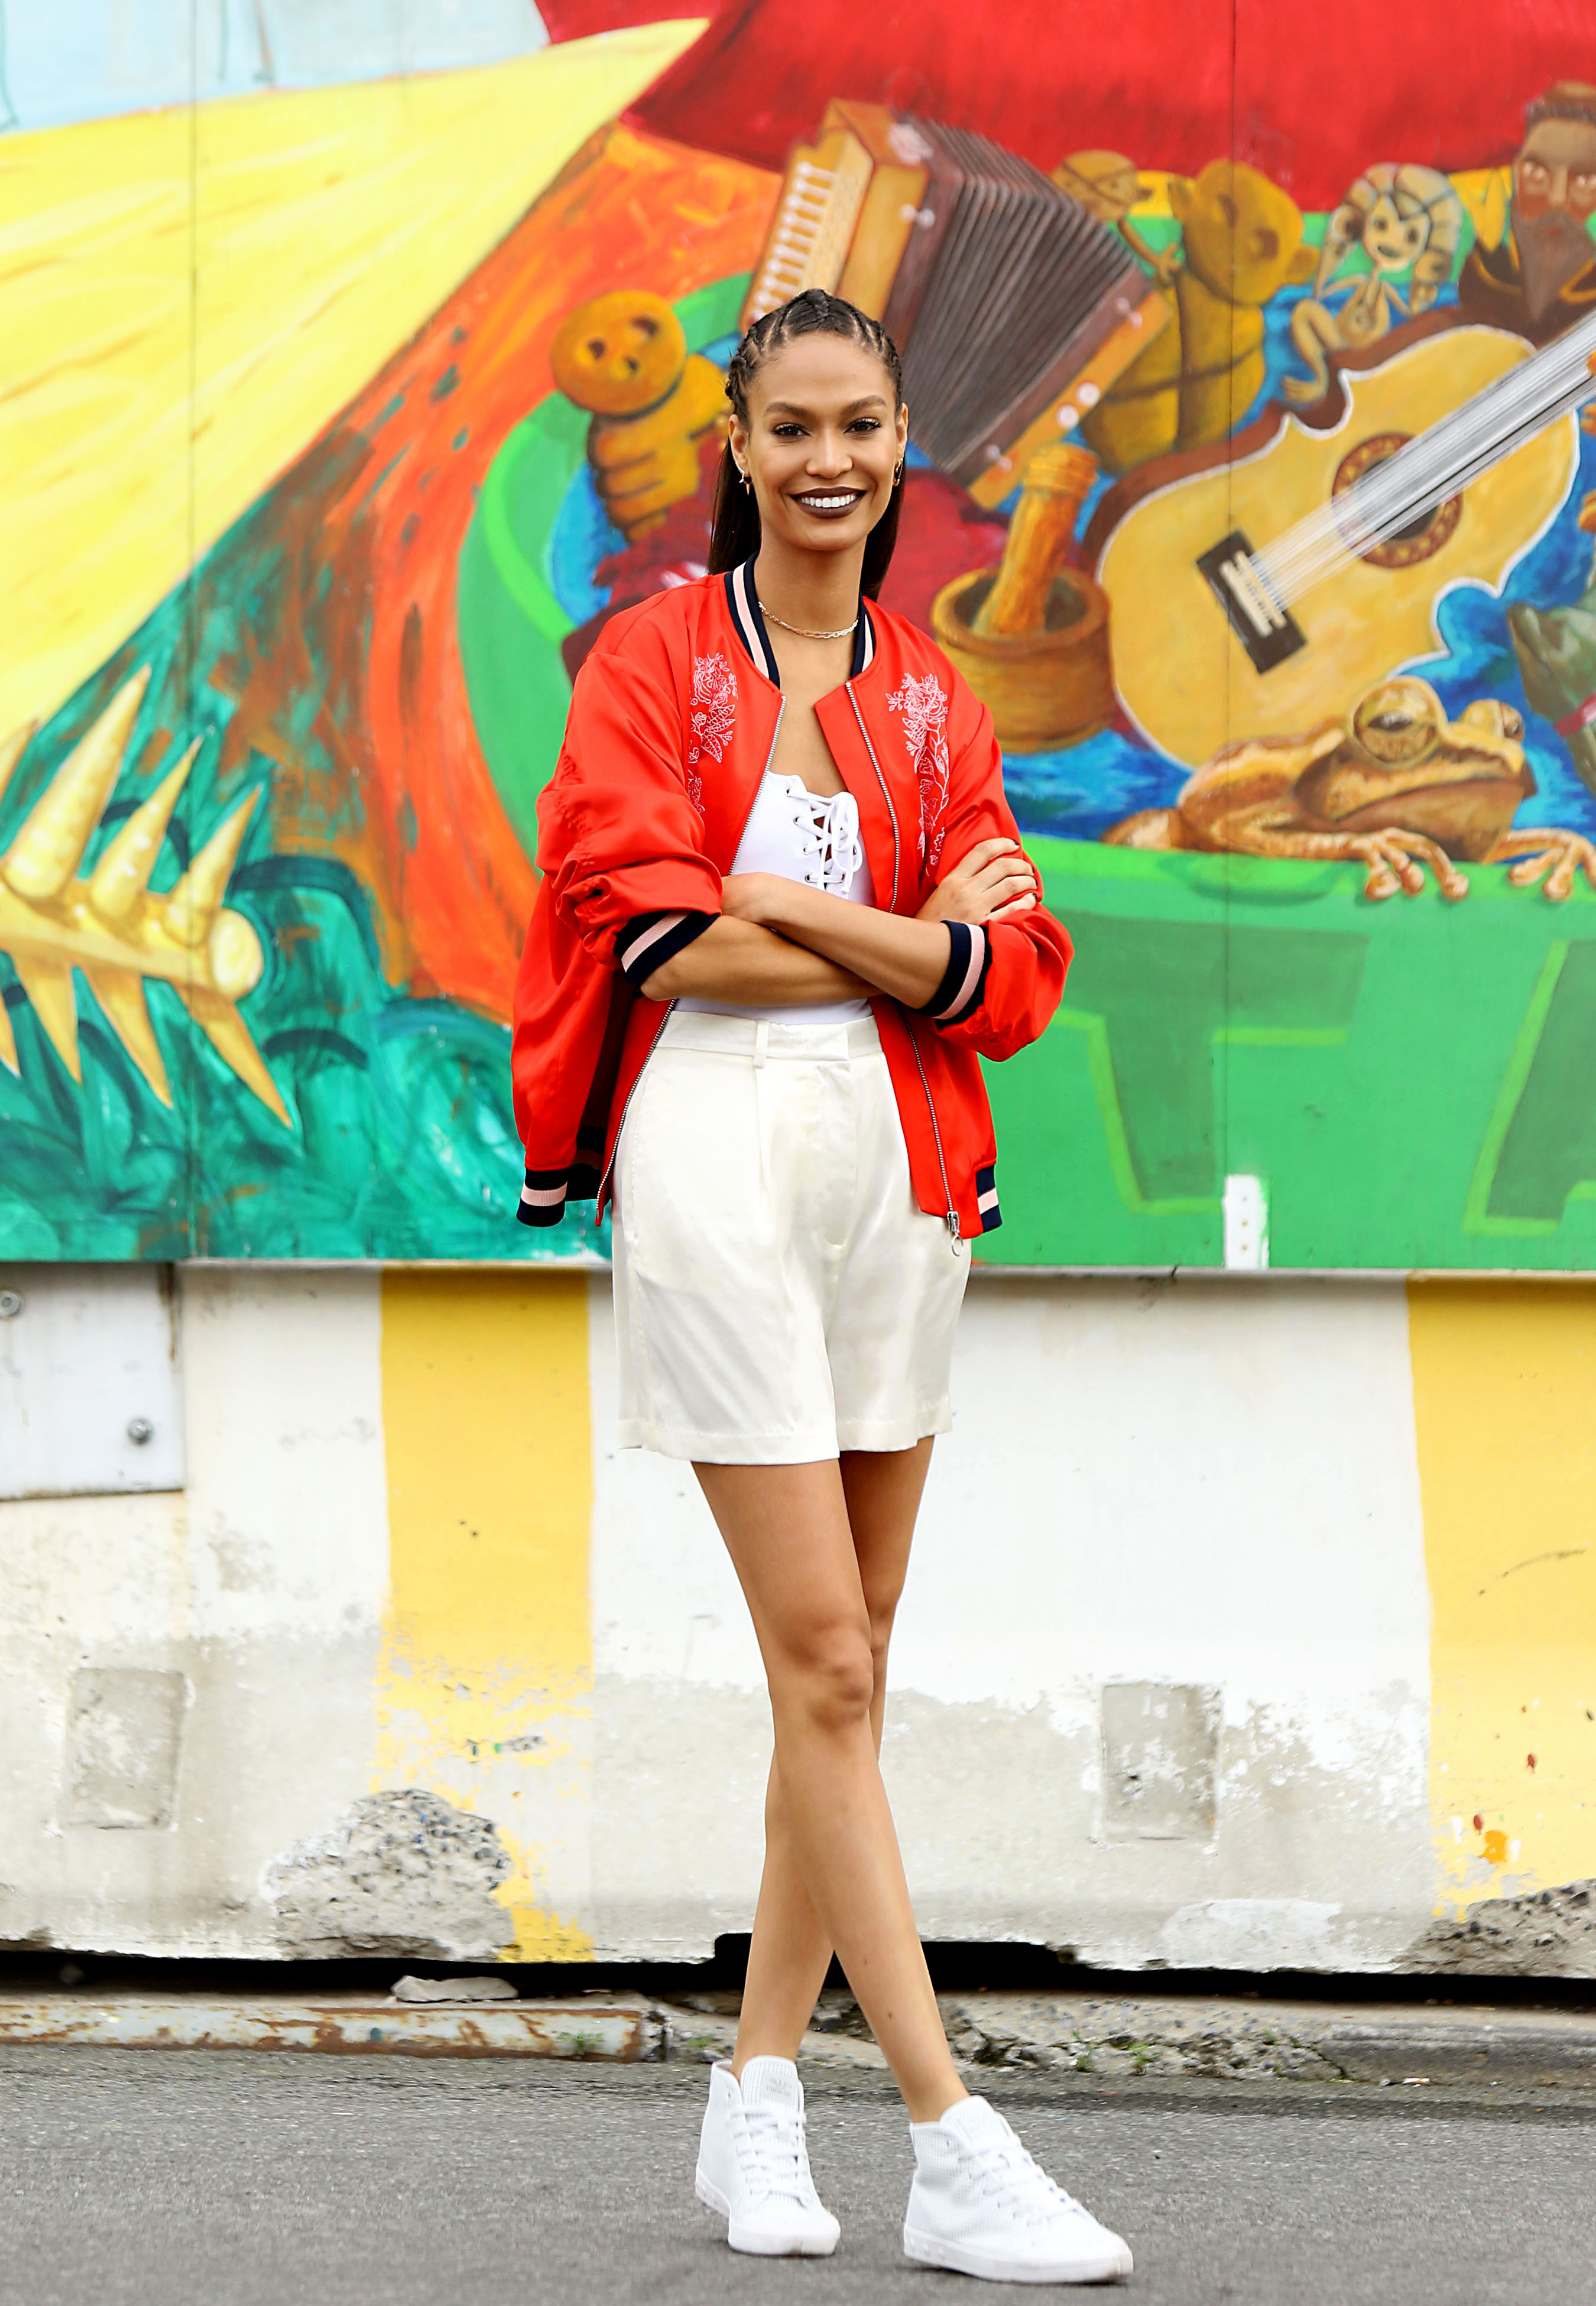 Brooklyn, NY -  June 14, 2016:  Joan Smalls out and about in Brooklyn.  -  PICTURED: Joan Smals   -, Image: 290564644, License: Rights-managed, Restrictions: , Model Release: no, Credit line: Profimedia, INSTAR Images